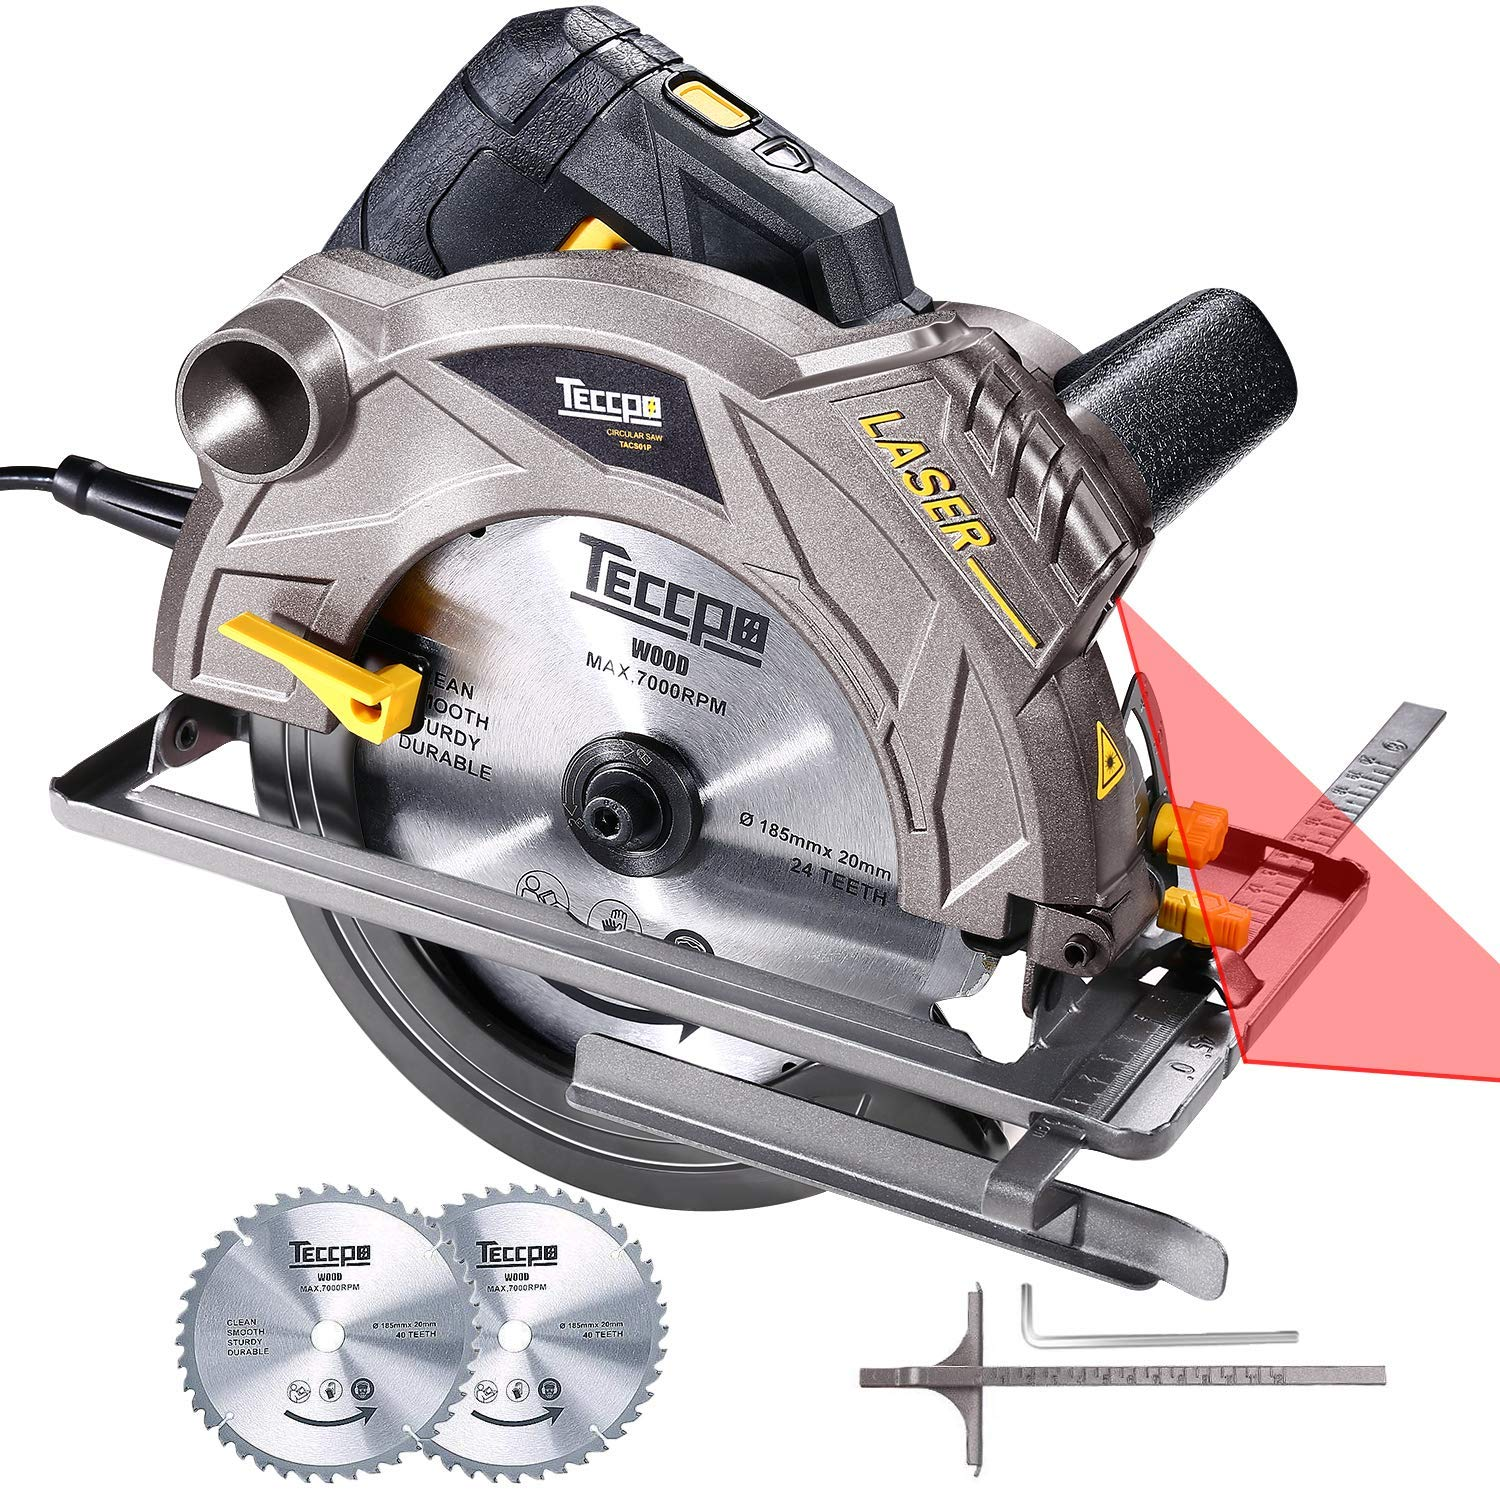 TECCPO Circular Saw with Laser, Corded Saw 1500W, 5500 RPM, 2 Blades 7-1 4 , Lightweight Aluminum Guard, Max Cutting Depth 2-1 2 90 , 1-4 5 45 , Scale Ruler – TACS01P